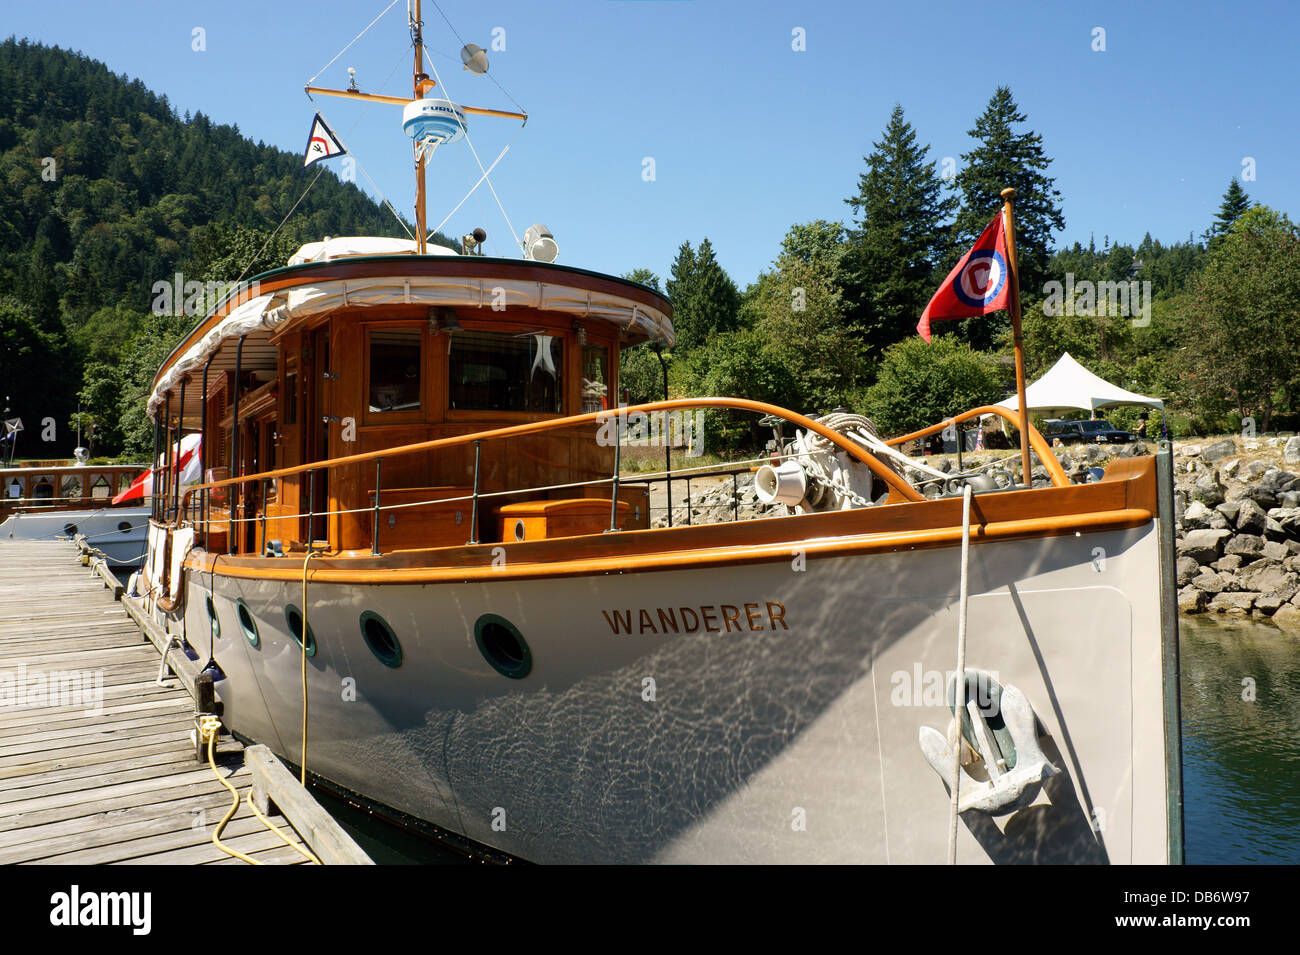 Vintage wooden cabin cruiser Wanderer docked at Snug Cove on Bowen Island, BC, Canada - Stock Image